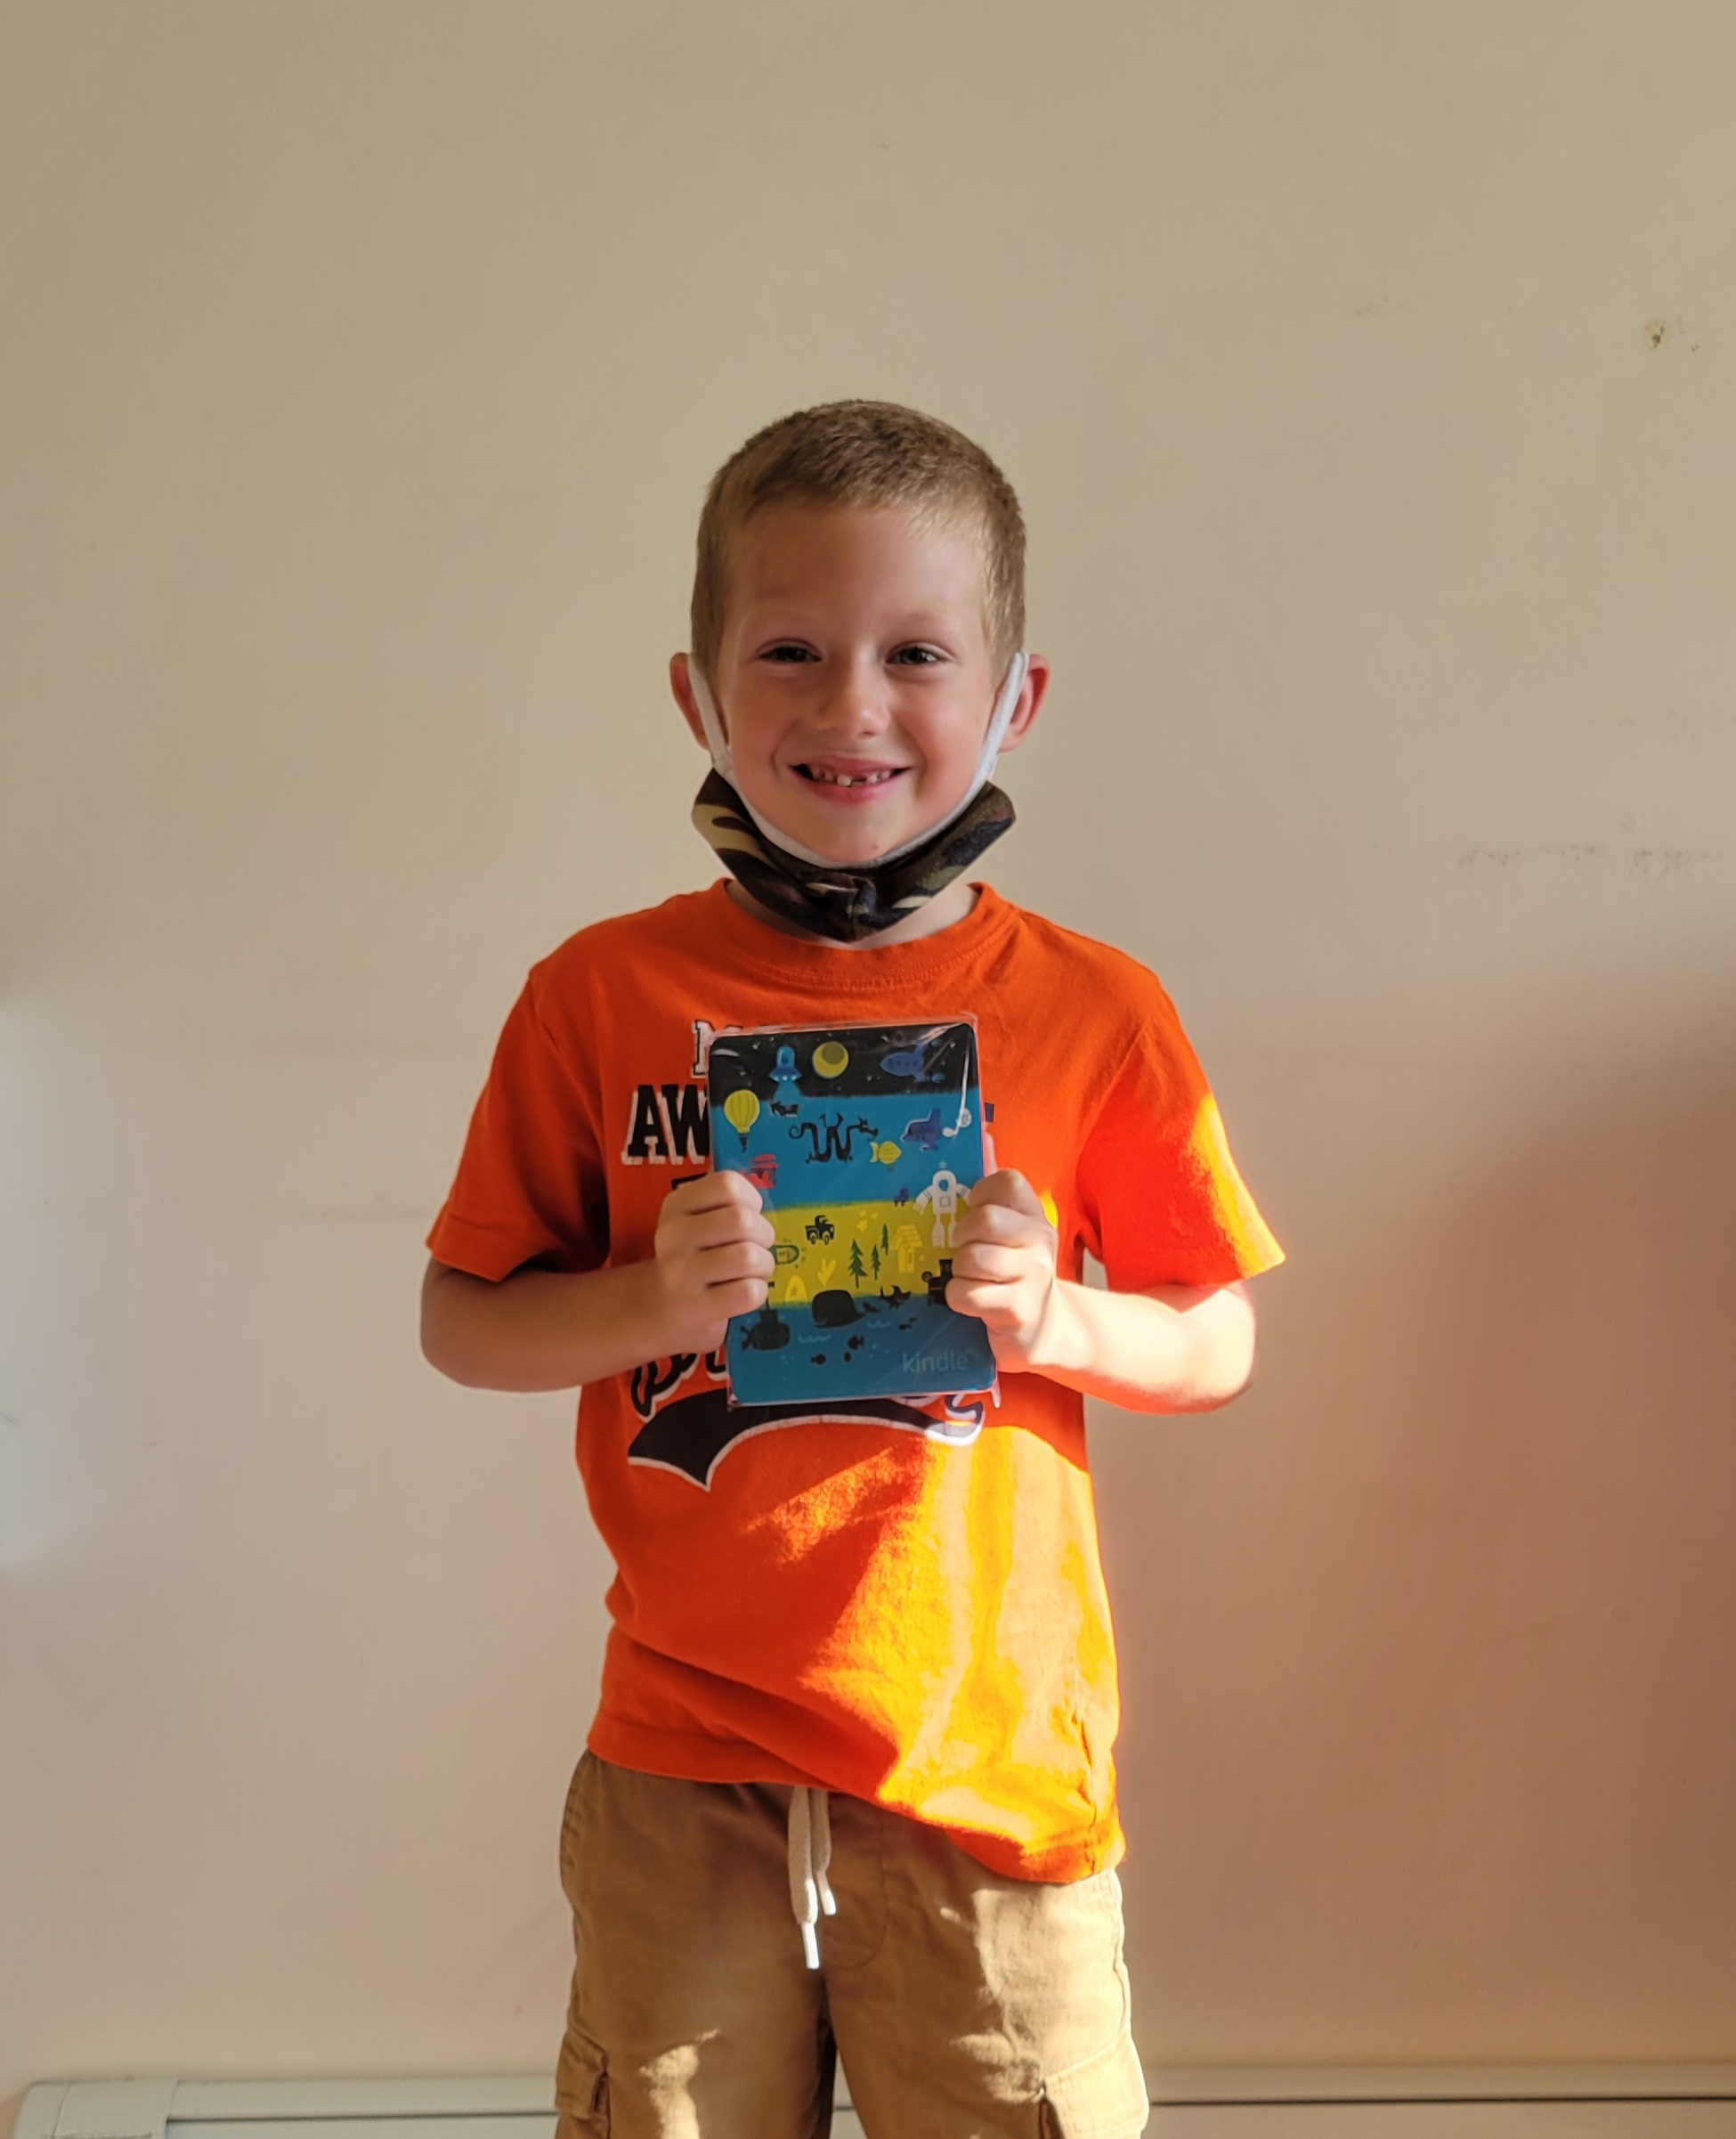 Wyatt is this year's winner of our Kid's Edition Kindle as part our youth program and back to school promotion.